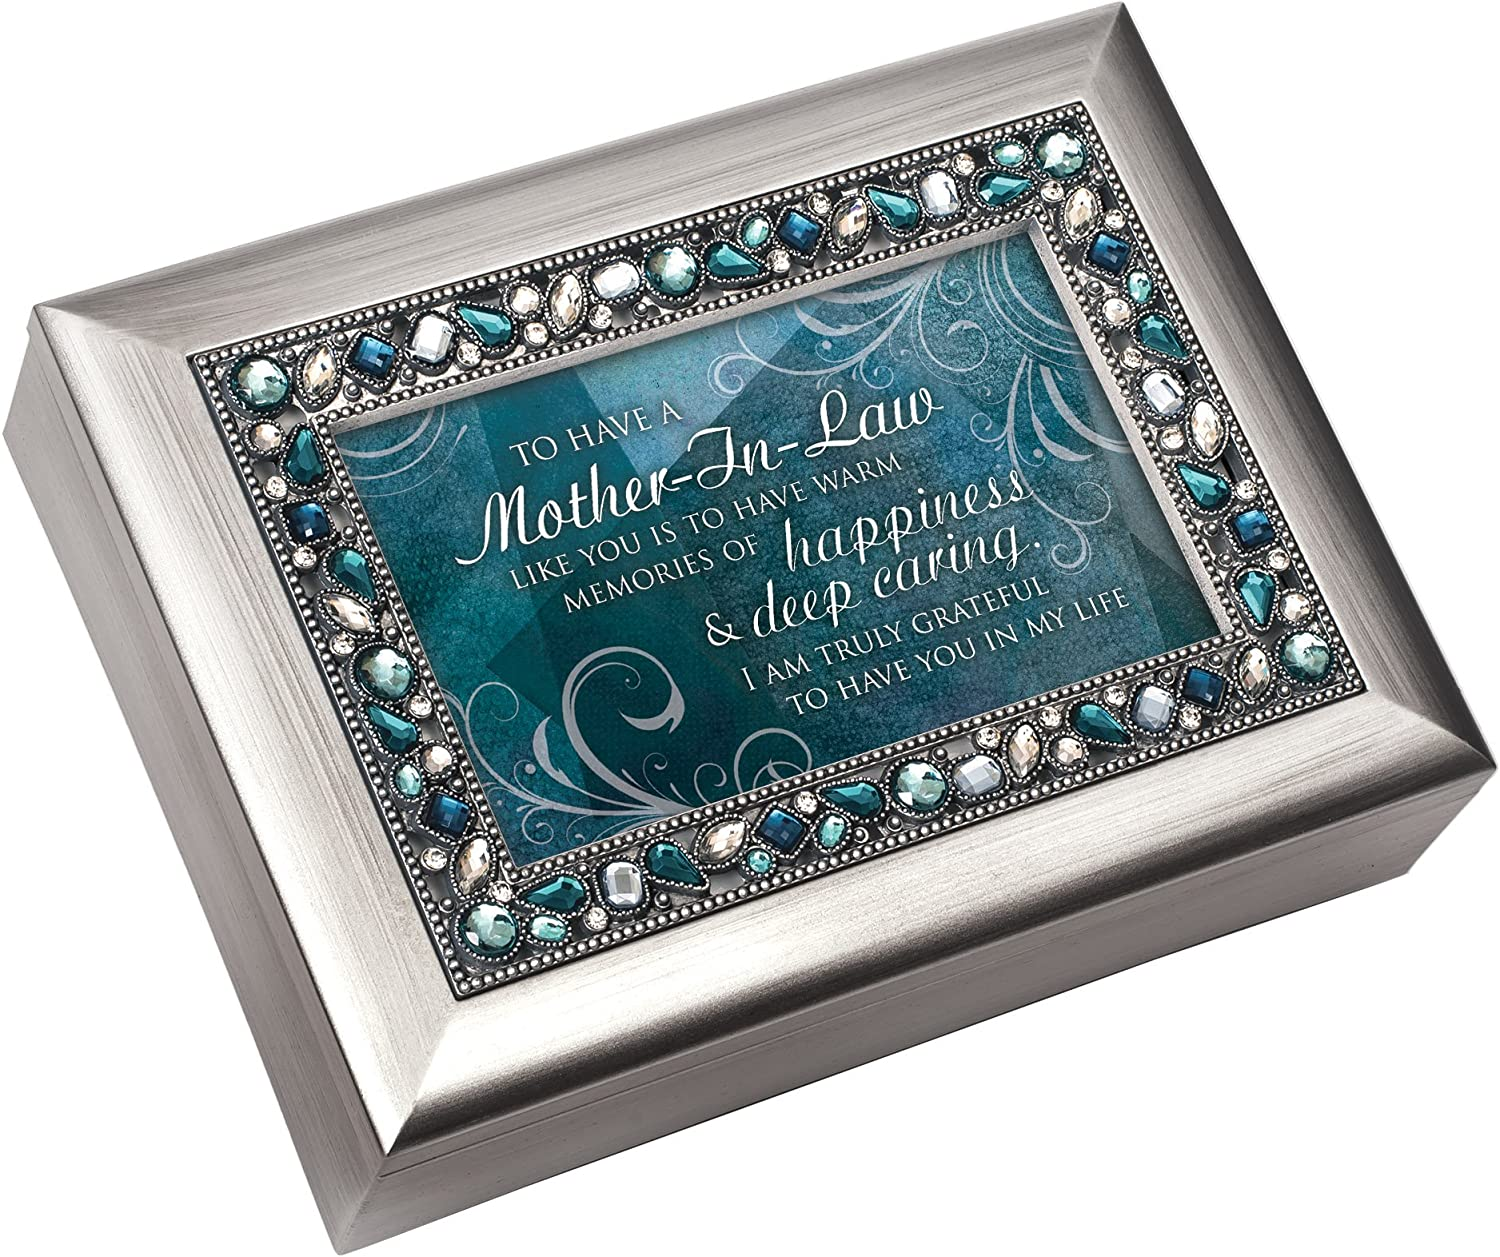 Cottage Garden Mother-in-Law Memories of Happiness Silvertone Jewelry Music Box Plays Wind Beneath My Wings